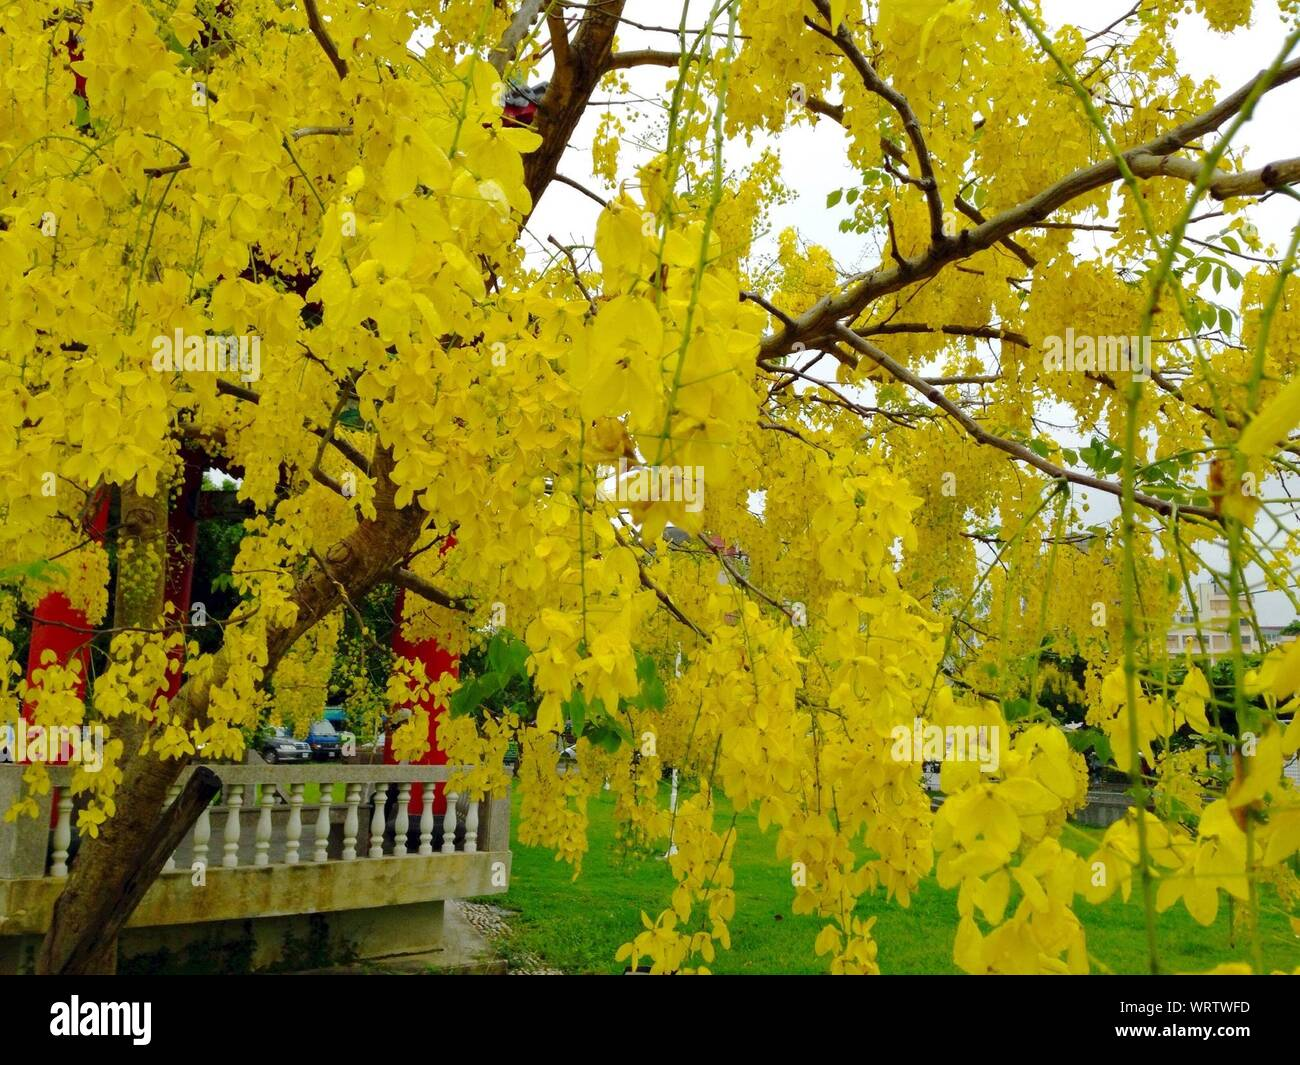 Yellow Flowering Tree High Resolution Stock Photography And Images Alamy